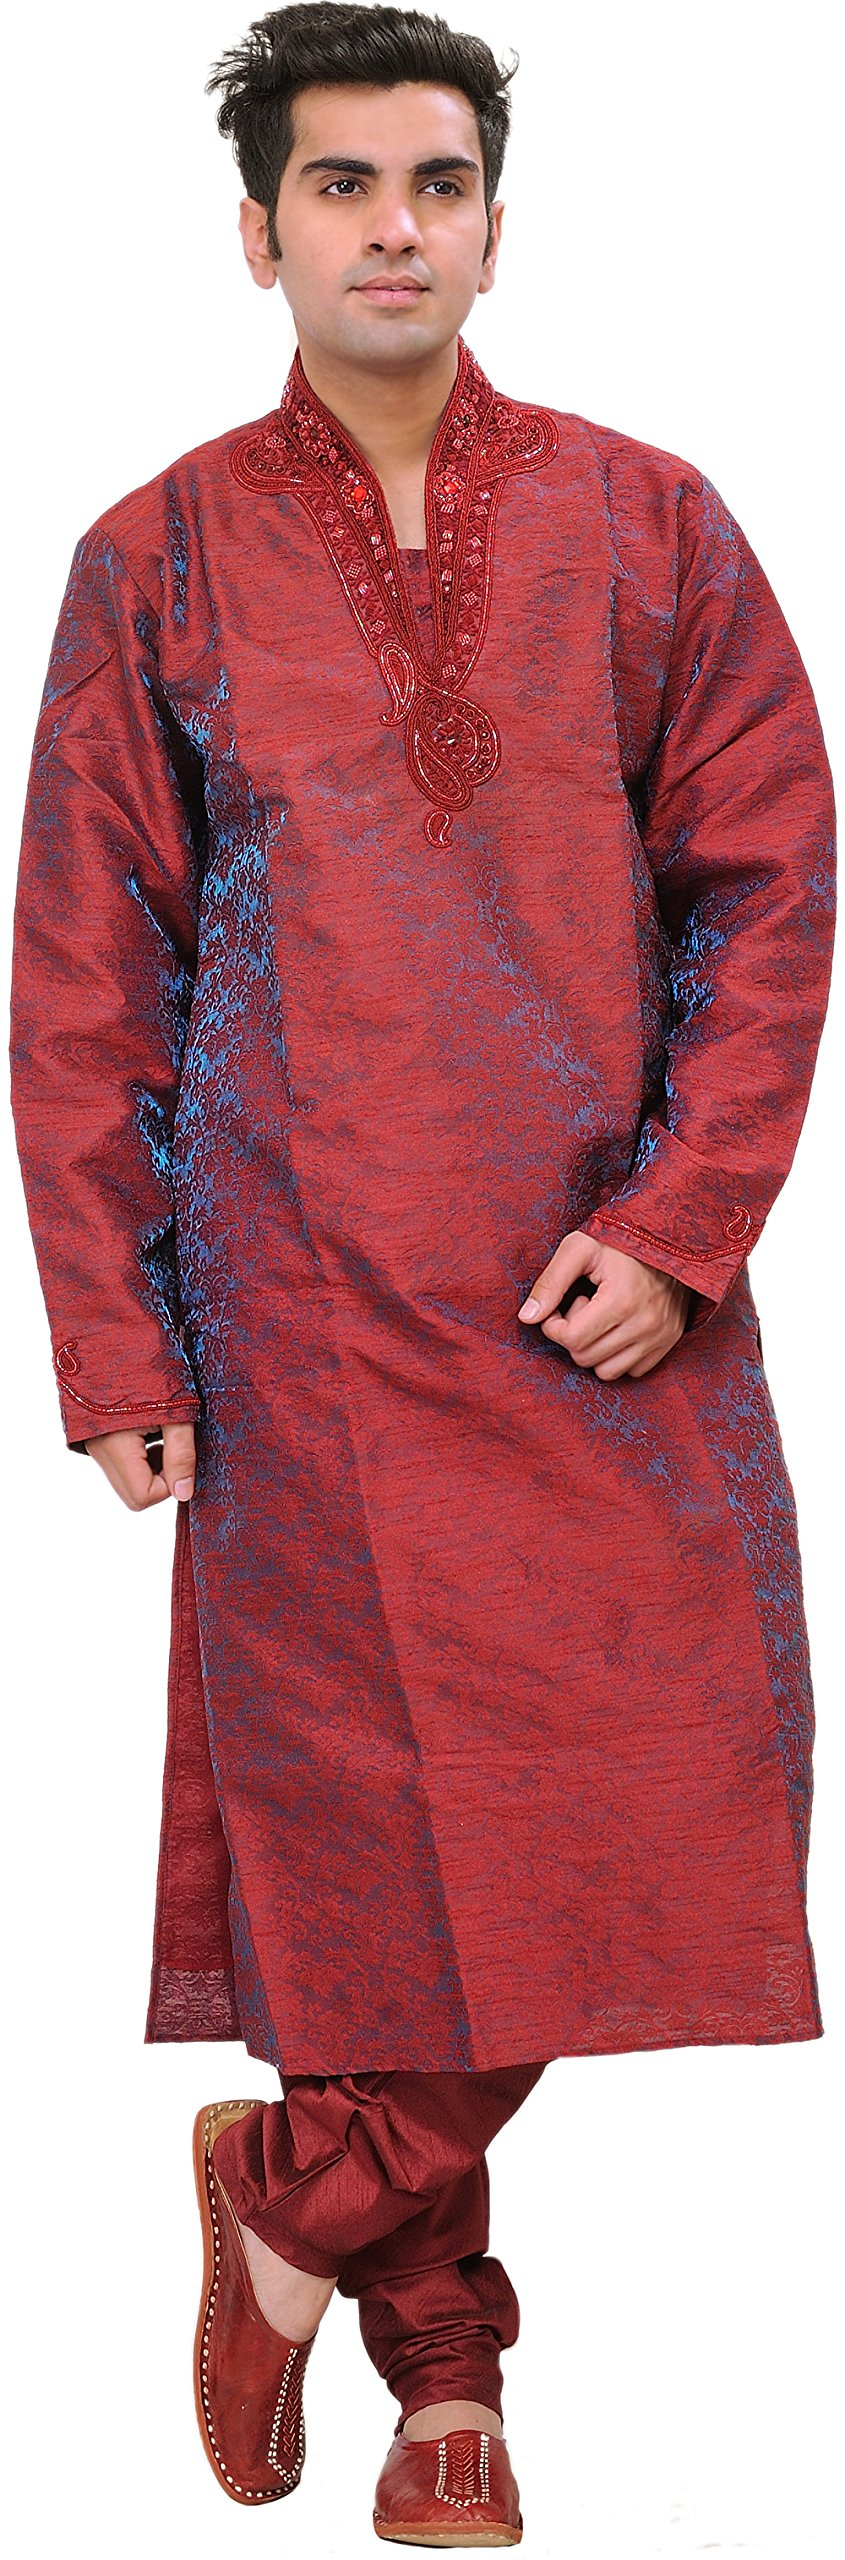 Exotic India Garnet Wedding Kurta Pajama Set With Embro - Red Size 40